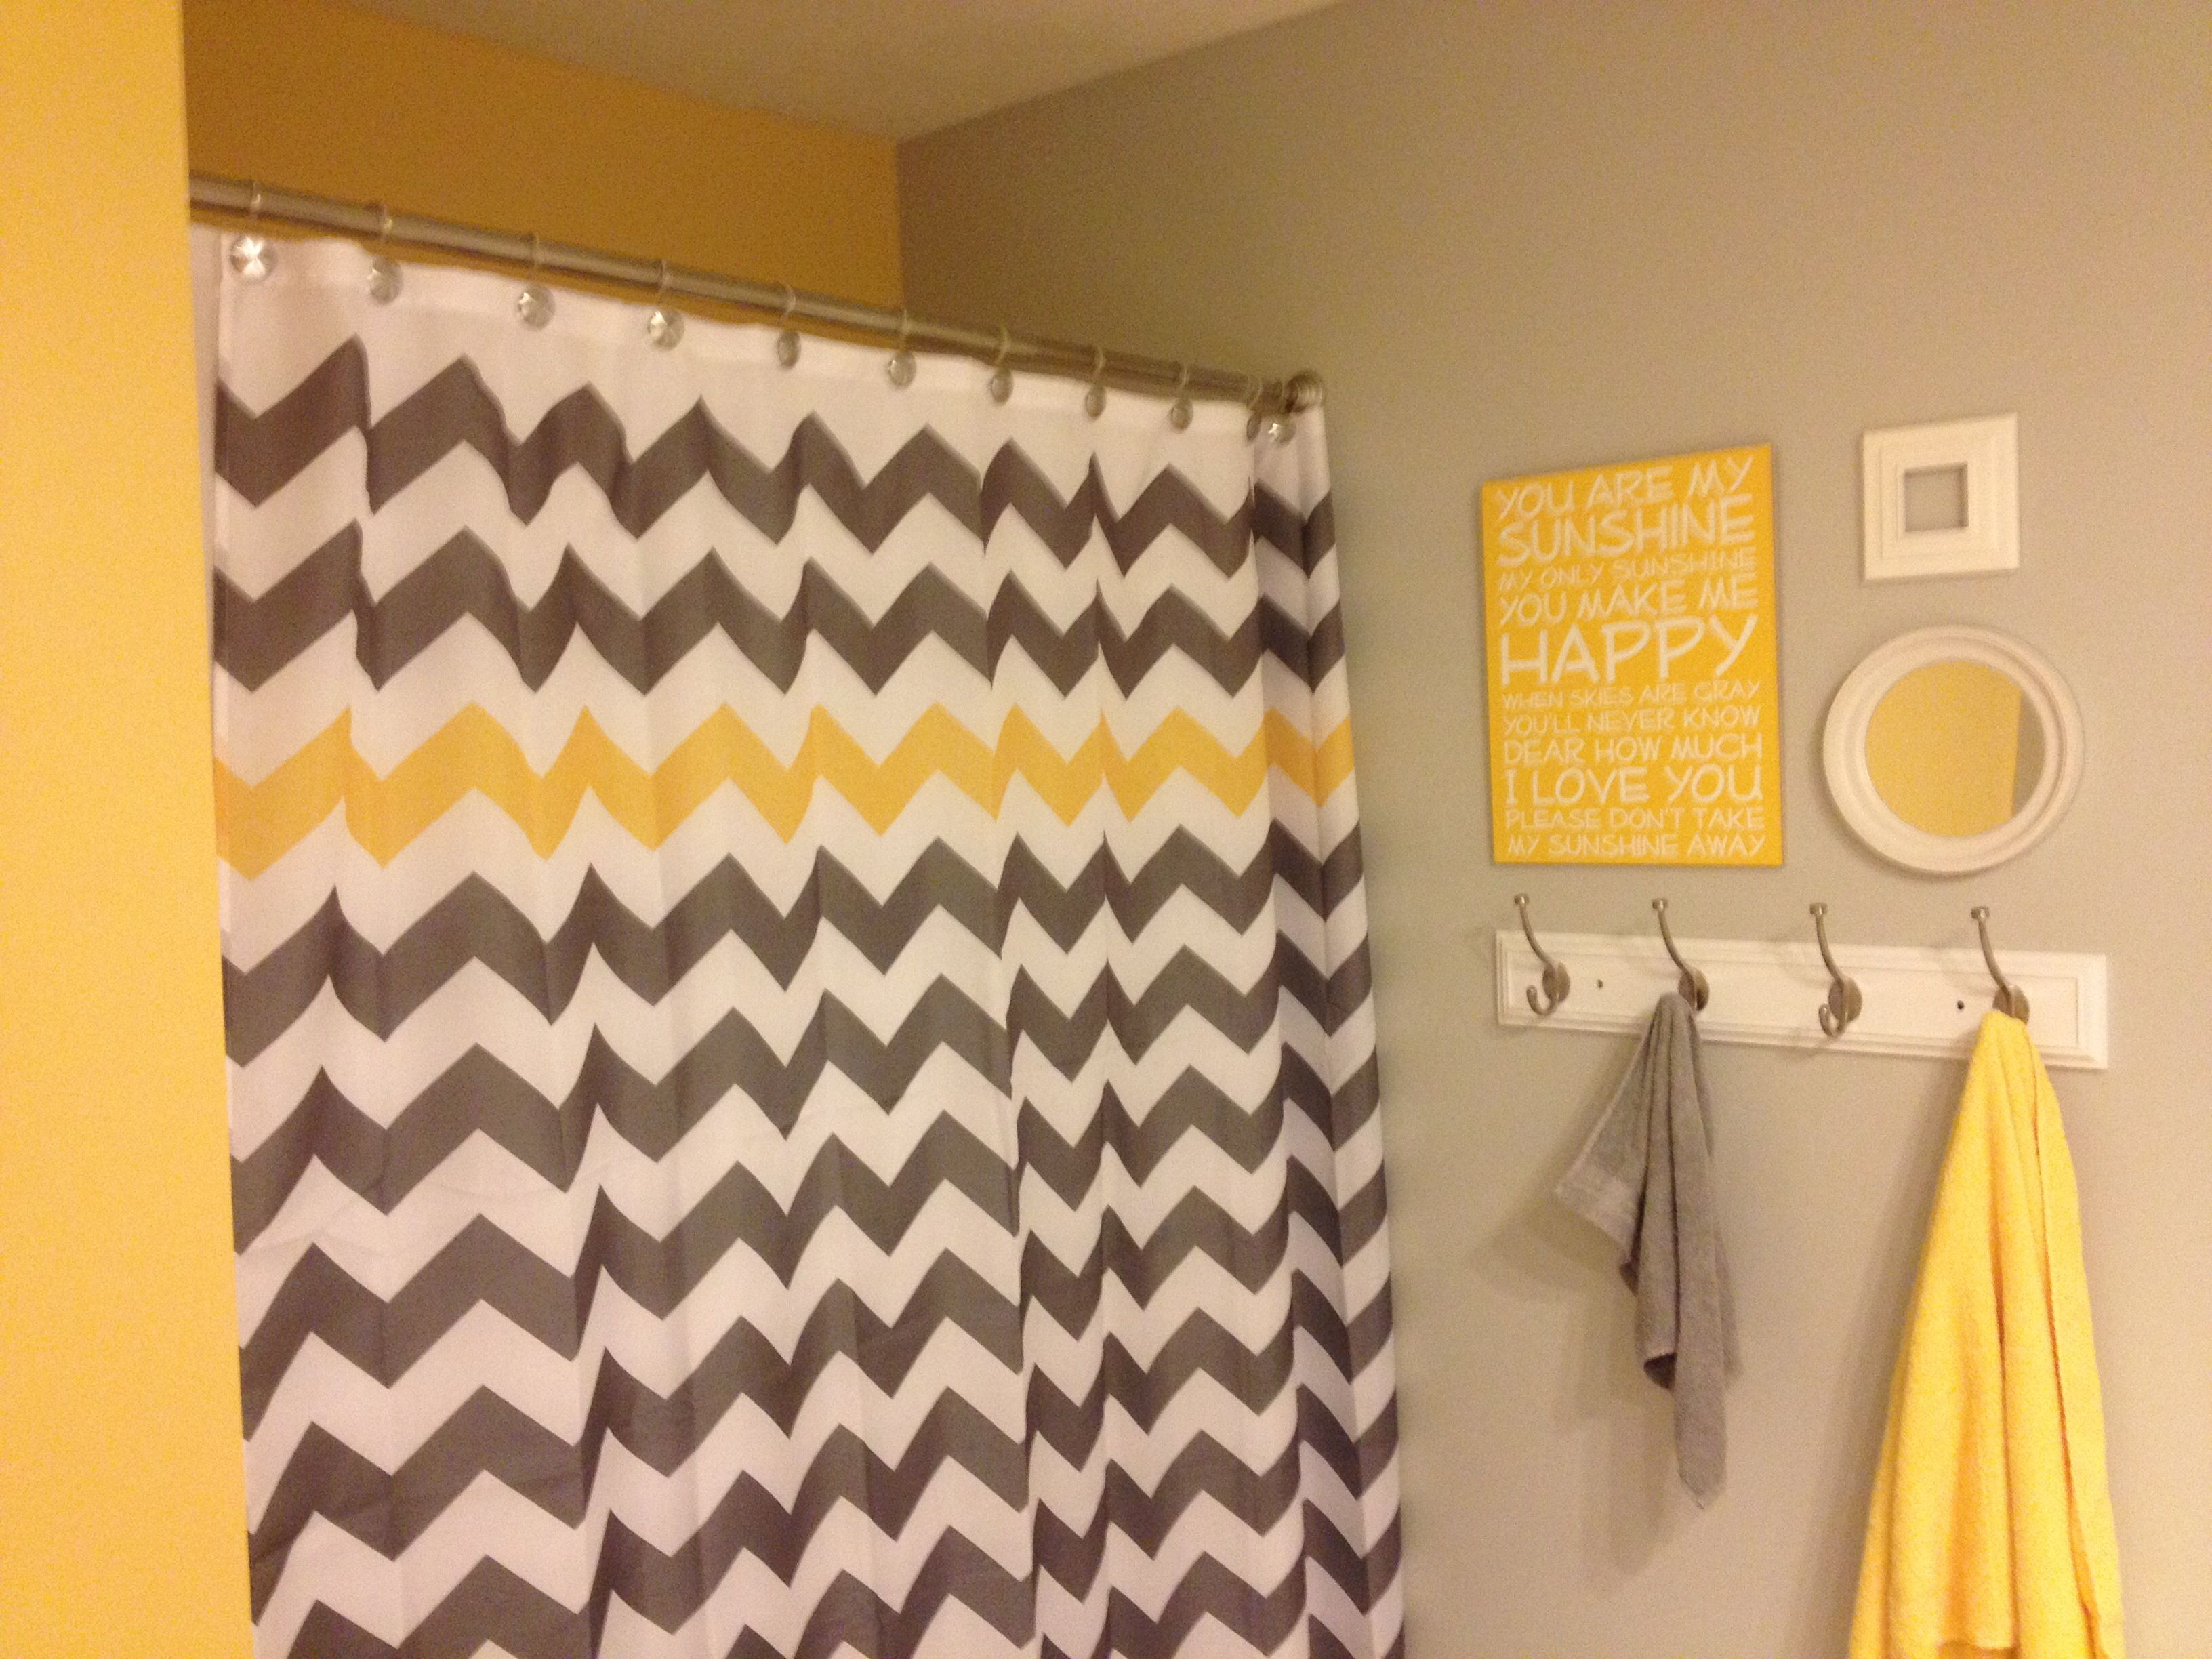 Gray and yellow bathroom color ideas - Yellow And Grey You Are My Sunshine Chevron Kids Bathroom Valspar Notre Dame Grey I Would Change It To A Blue Type Color Or Tealish